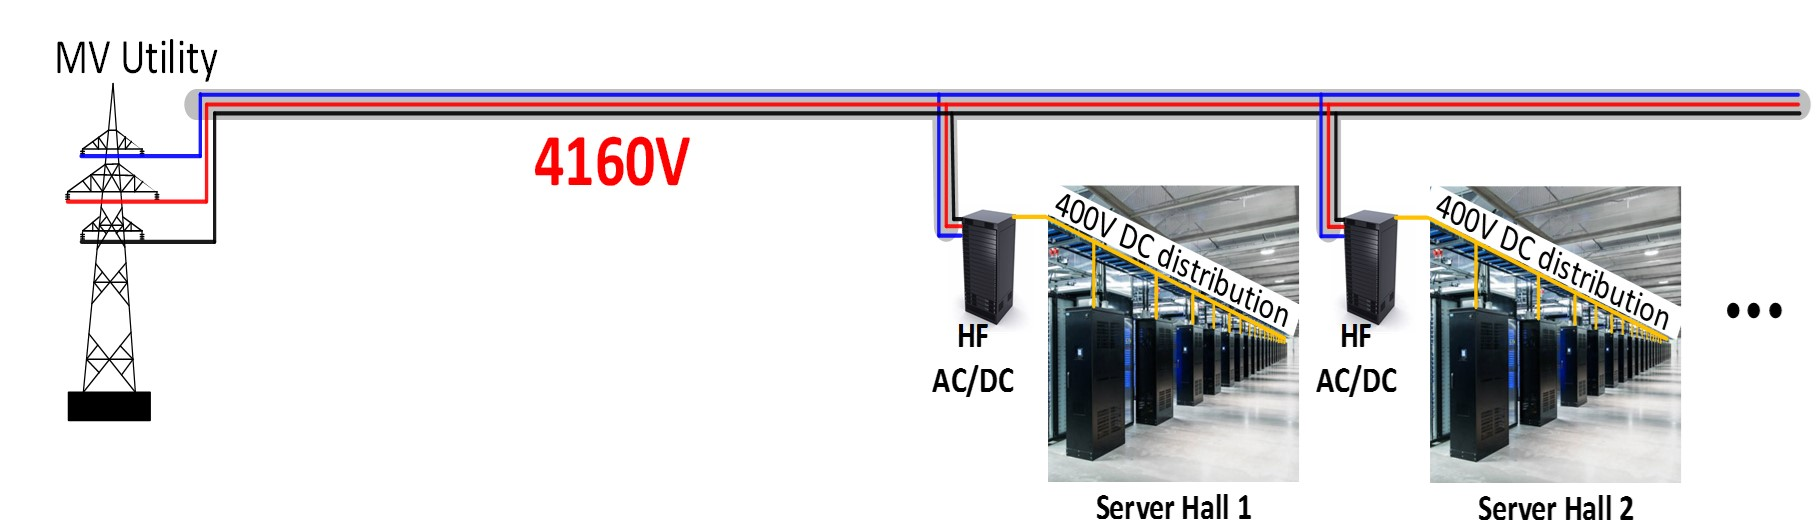 Image of proposed power architecture for future data center